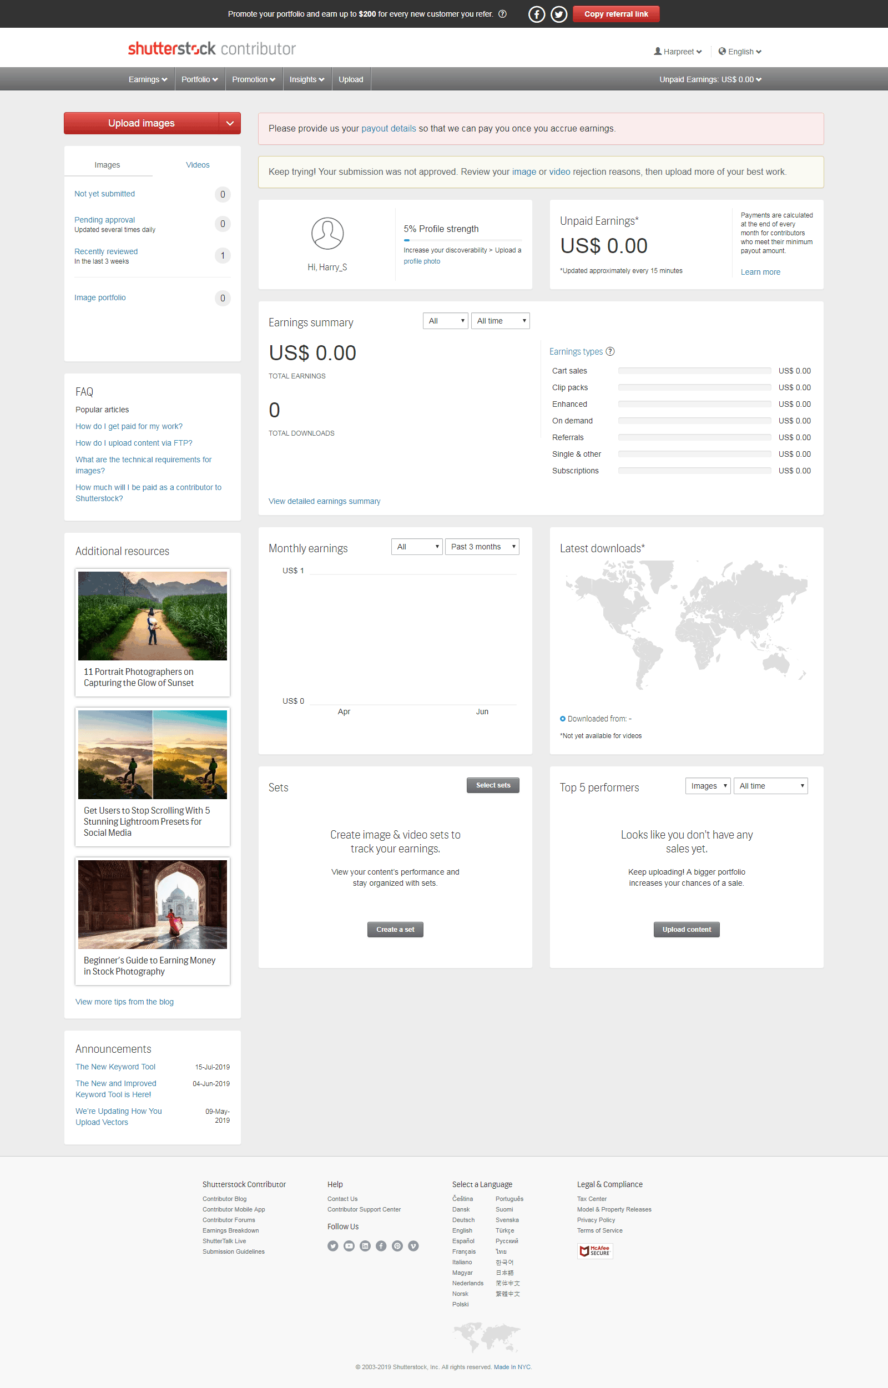 Dashboard of Shutterstock contributor's panel